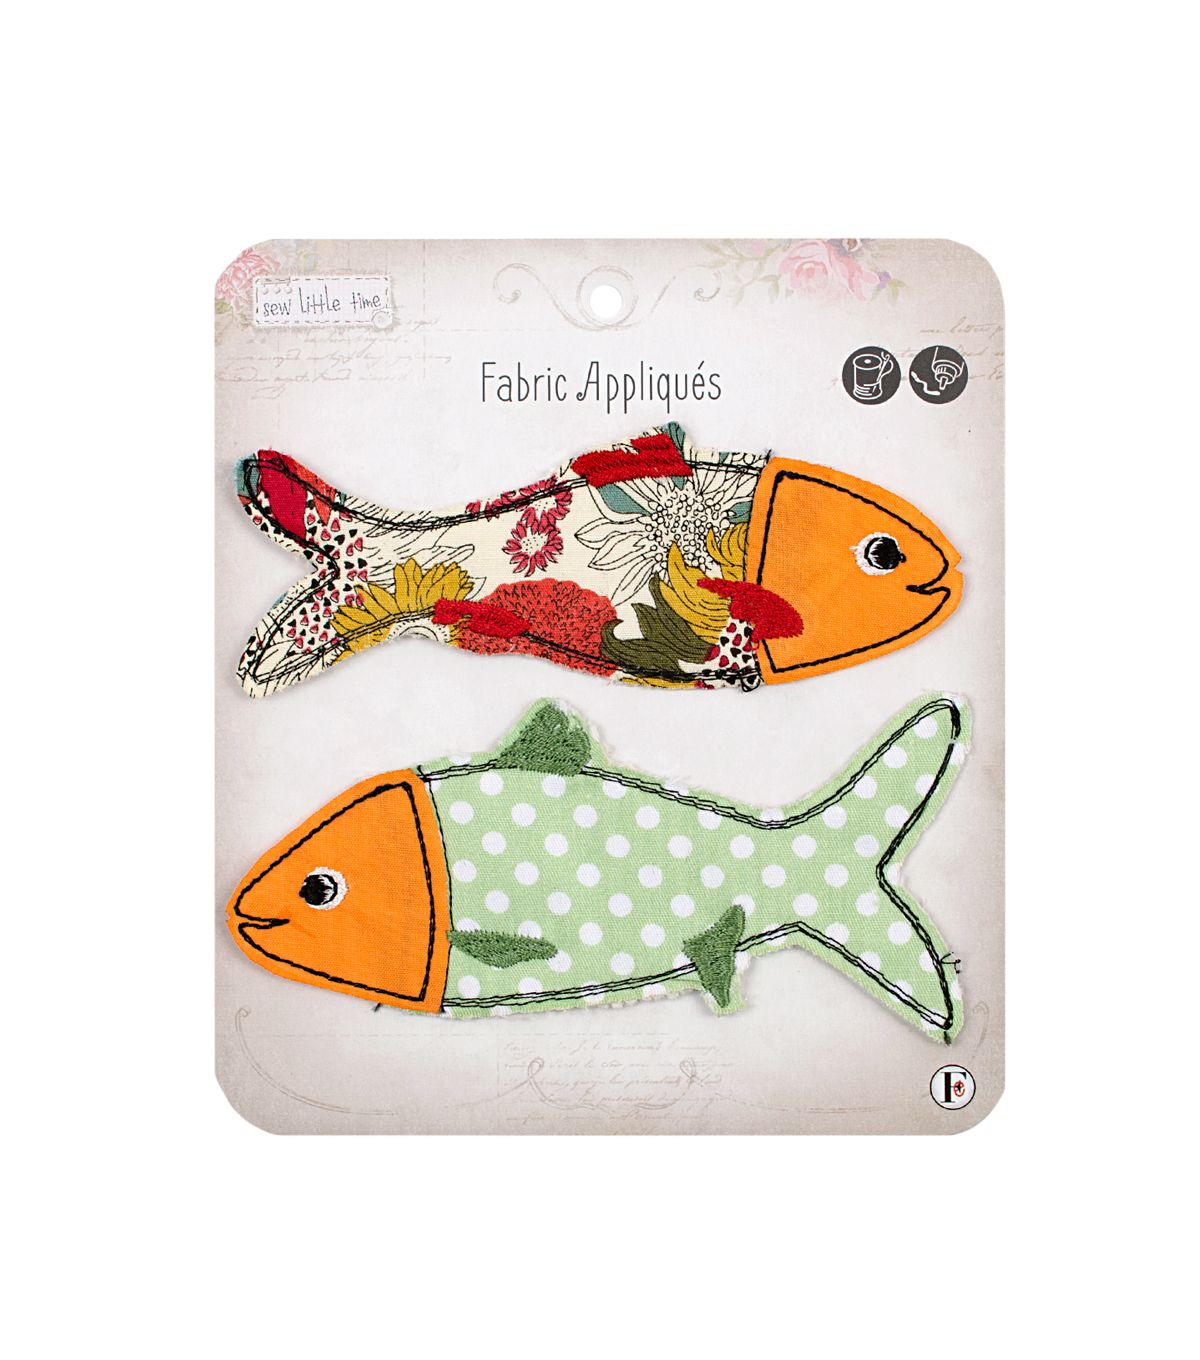 Sew Little Time Fish applique available at Joann's Craft